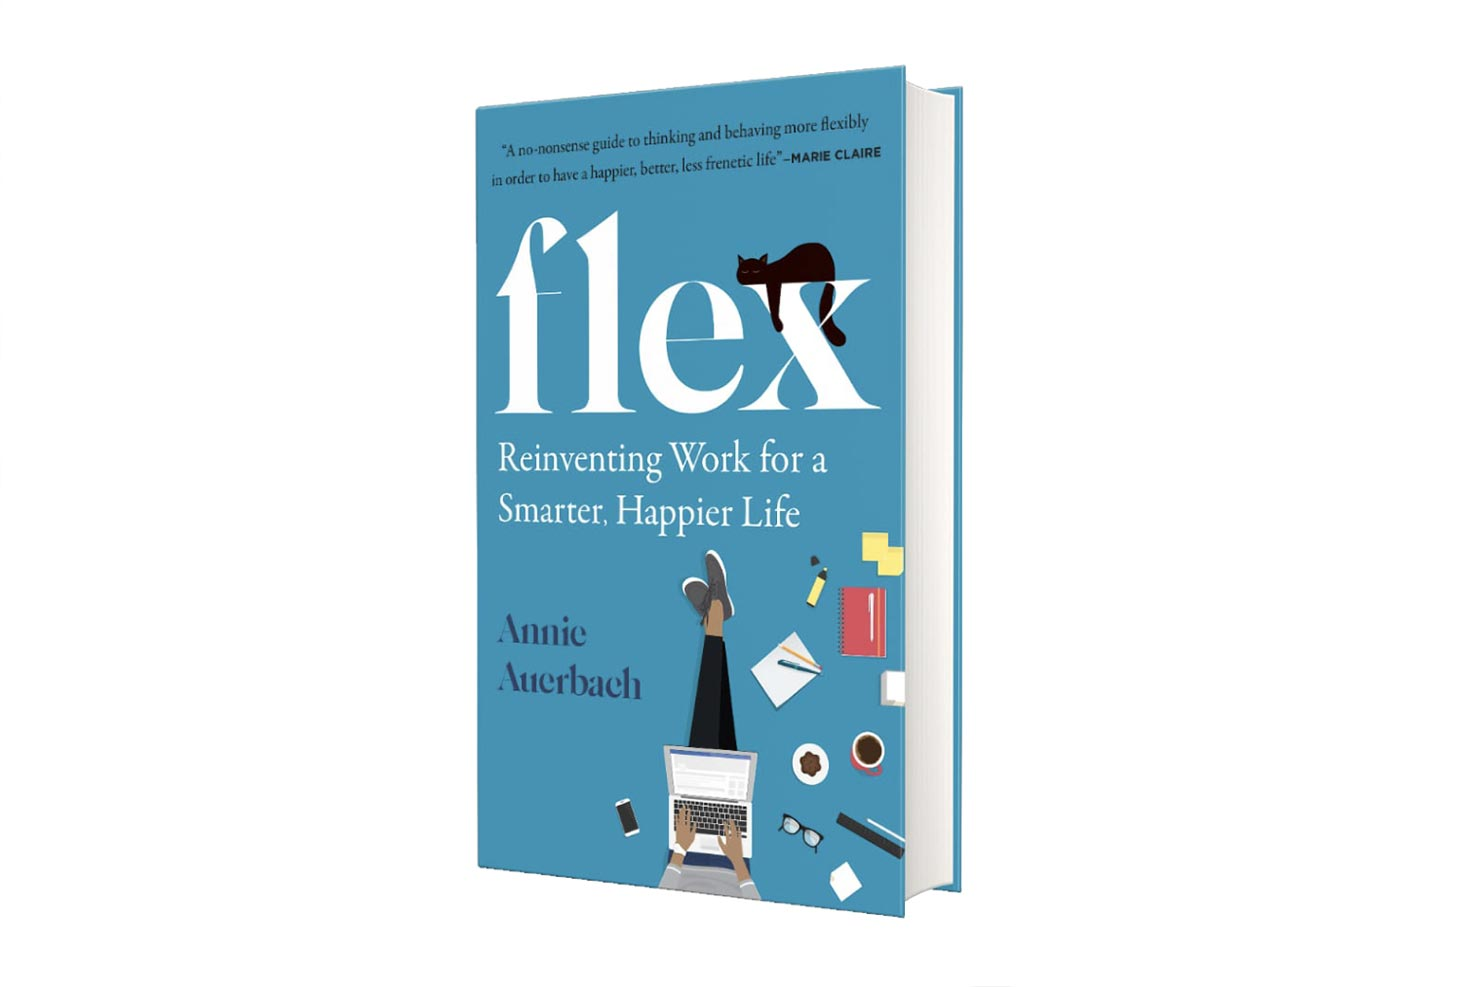 Flex Reinventing Work for a Smarter. Happier Life by Annie Auerbach